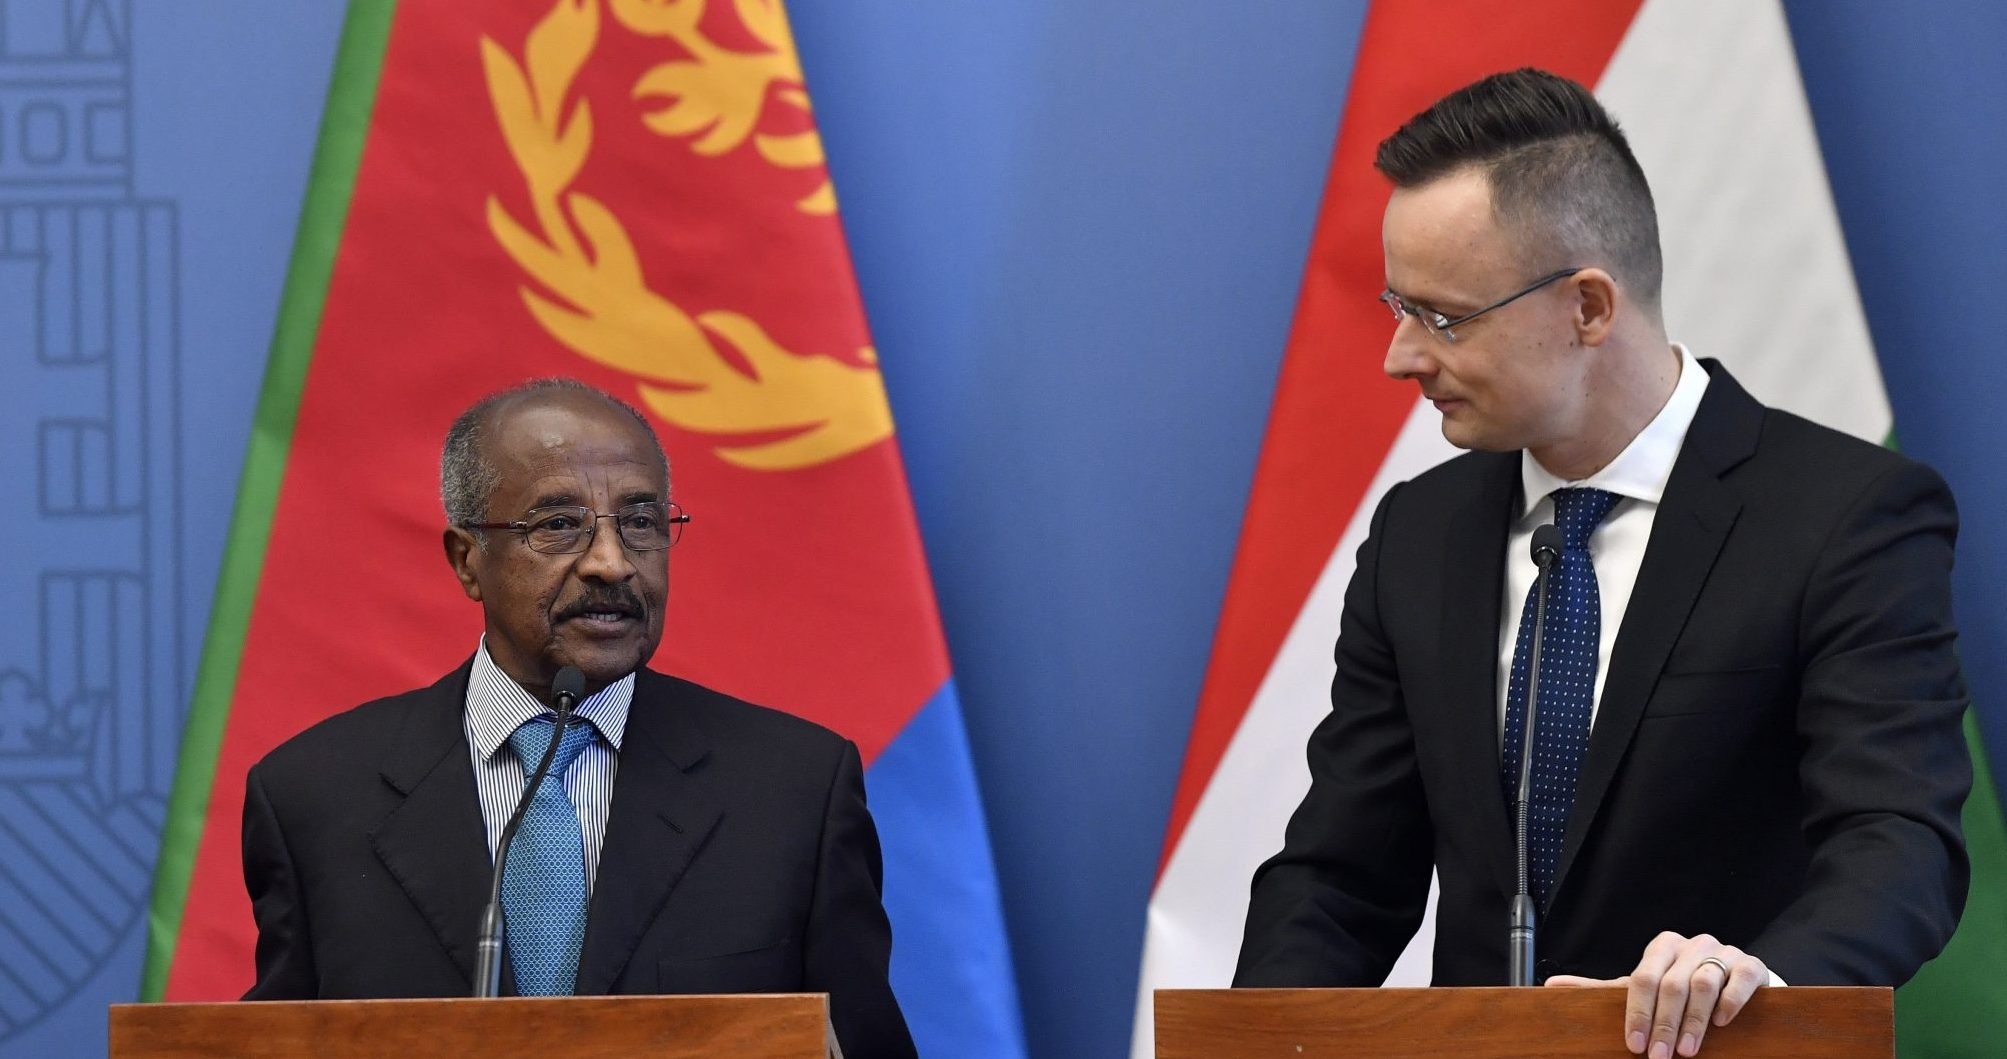 eritrea Hungary foreign ministers